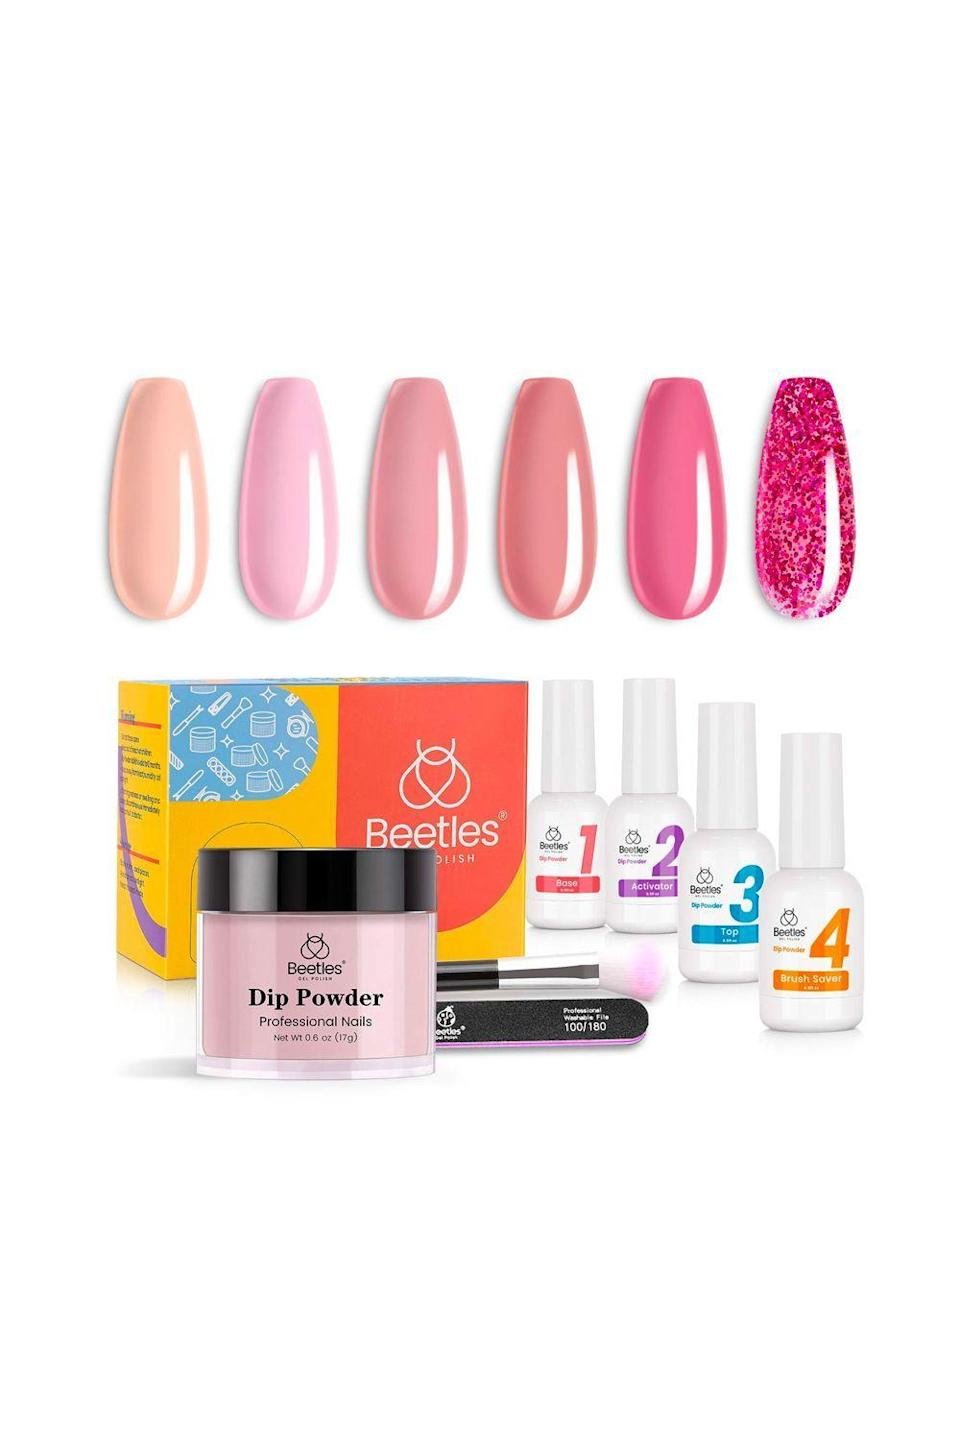 """<p><strong>beetles Gel Polish</strong></p><p>amazon.com</p><p><strong>$15.99</strong></p><p><a href=""""https://www.amazon.com/dp/B08LPDXM18?tag=syn-yahoo-20&ascsubtag=%5Bartid%7C10049.g.31817042%5Bsrc%7Cyahoo-us"""" rel=""""nofollow noopener"""" target=""""_blank"""" data-ylk=""""slk:Shop Now"""" class=""""link rapid-noclick-resp"""">Shop Now</a></p><p>IMO, a manicure is only as good as the time it lasts. And while that <em>kiiinda</em> depends on how fast your nails grow, <strong>this kit boasts an impressive three weeks before you need to <a href=""""https://www.cosmopolitan.com/style-beauty/beauty/g30383581/best-gel-polish-removers/"""" rel=""""nofollow noopener"""" target=""""_blank"""" data-ylk=""""slk:remove the gel"""" class=""""link rapid-noclick-resp"""">remove the gel</a>. </strong>And if you want nice nails but also gotta pay rent, this one is on sale for Amazon Prime Day 2021. </p>"""